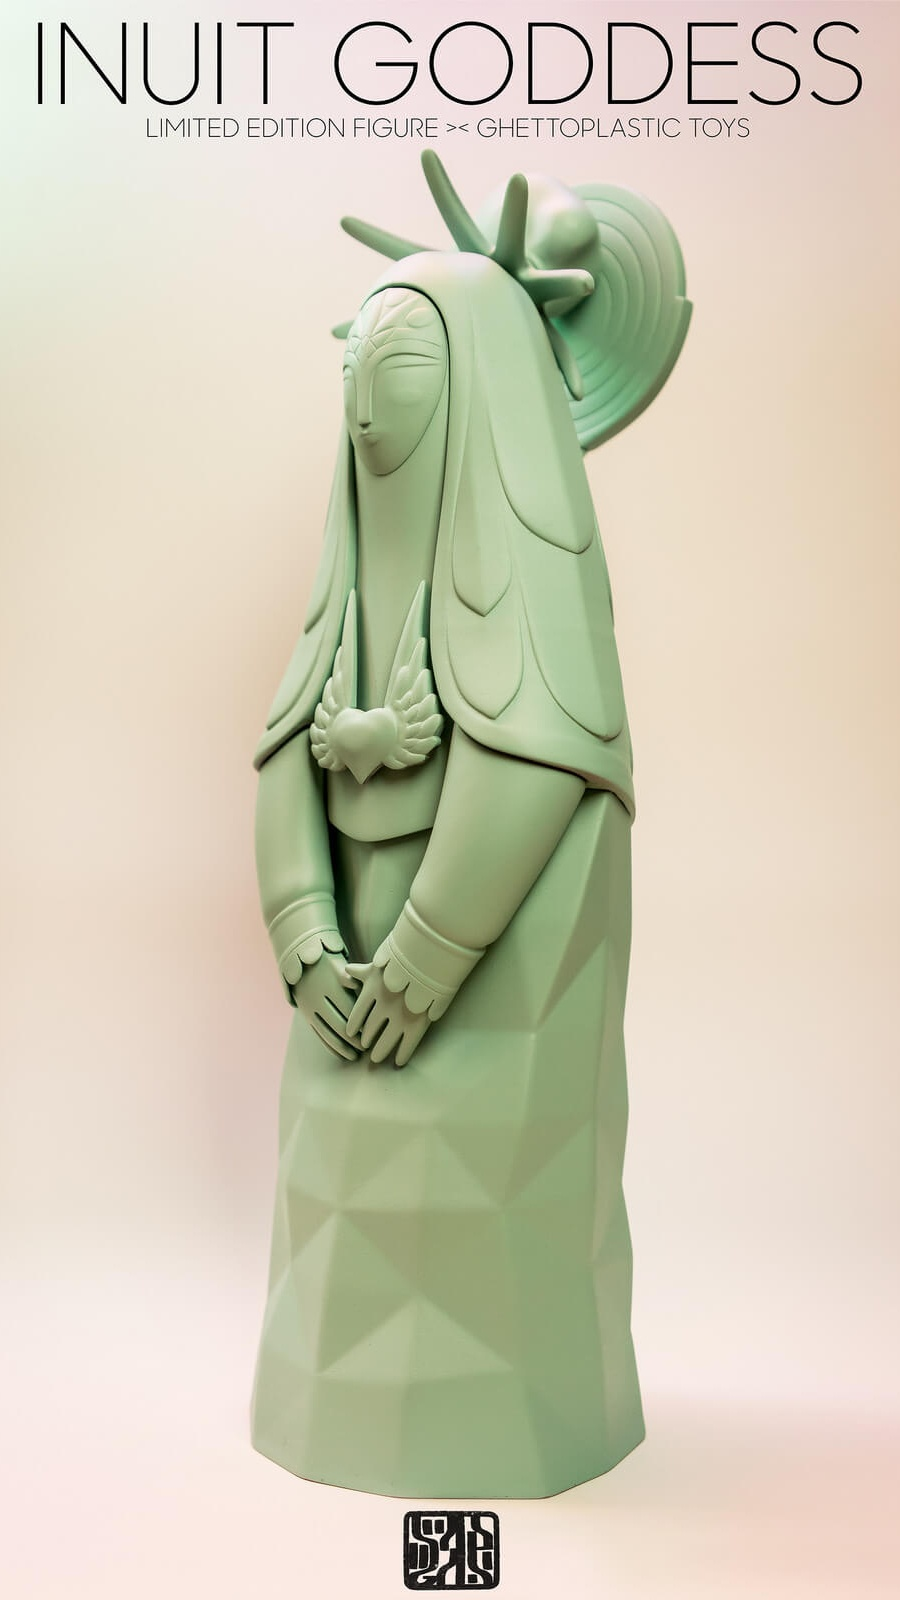 Inuit Goddess By Ghettoplastic Toys Sadgas side